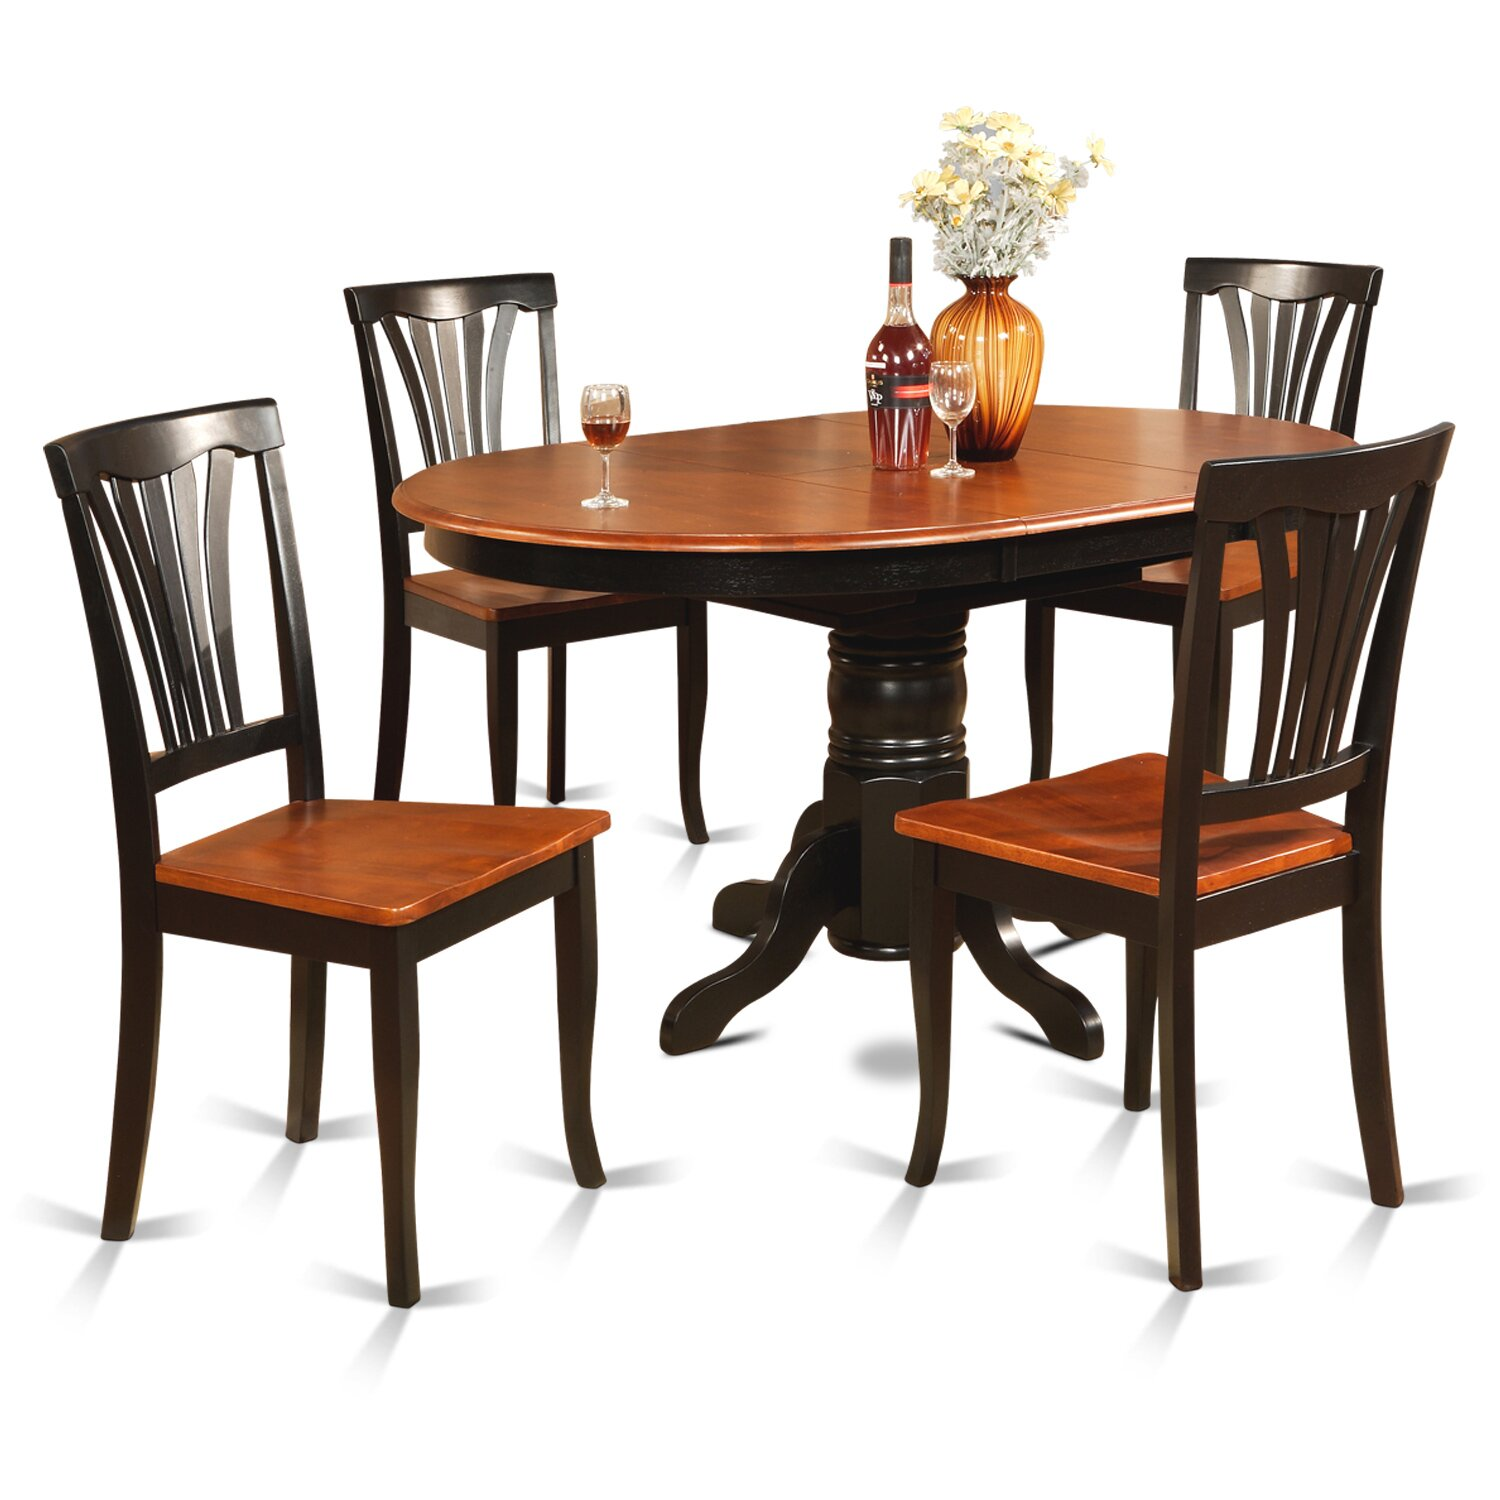 Wooden importers avon 5 piece dining set reviews wayfair for Wooden dining set